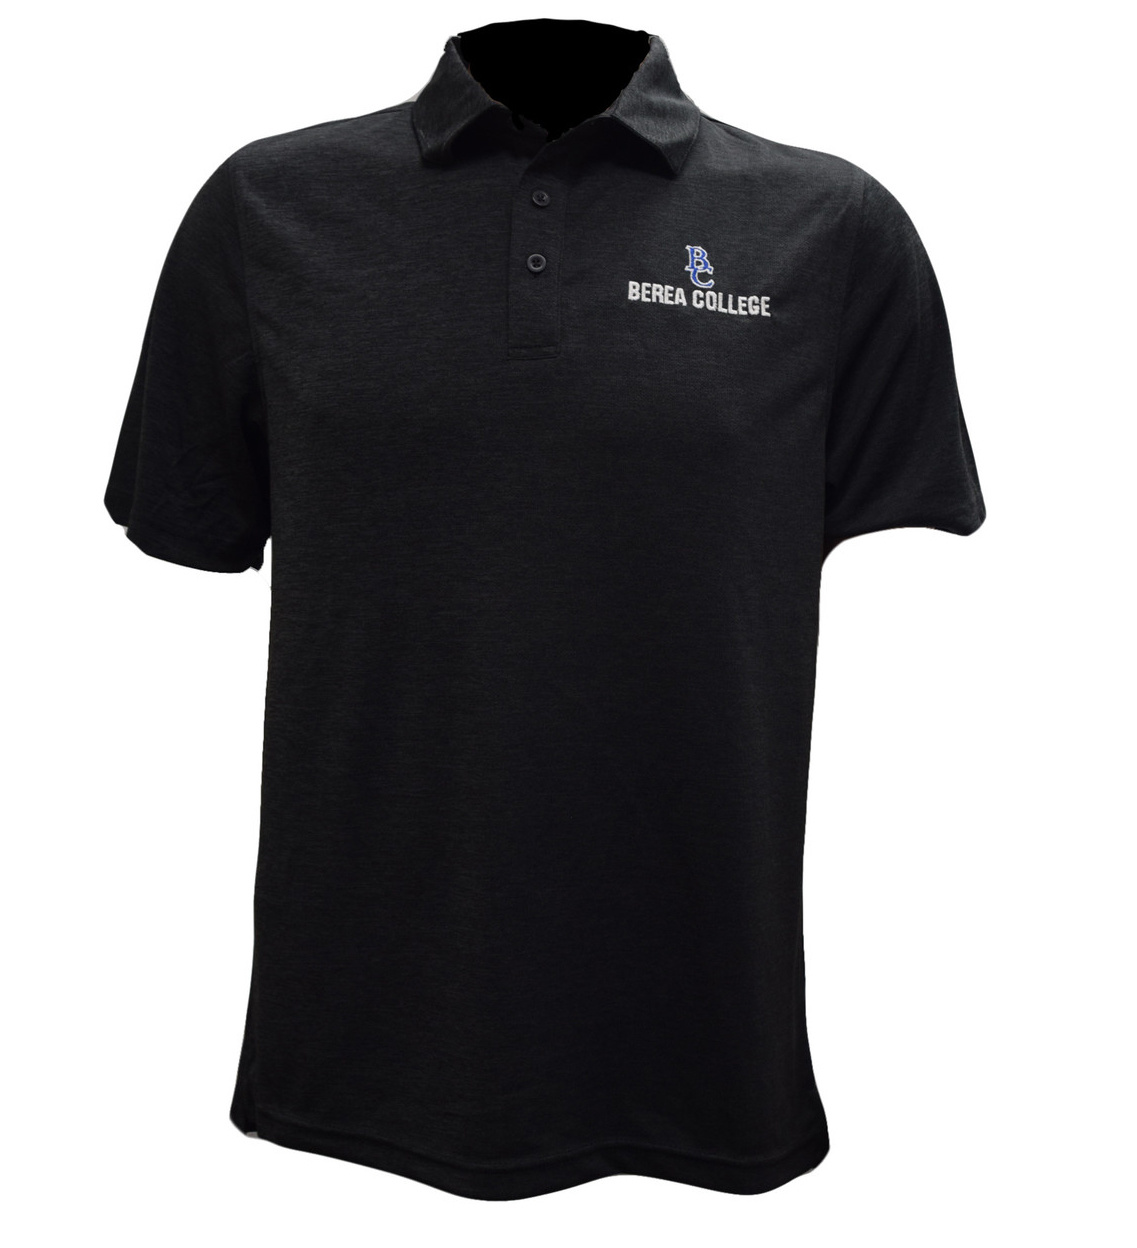 BC Berea College Black Heather Polo-1